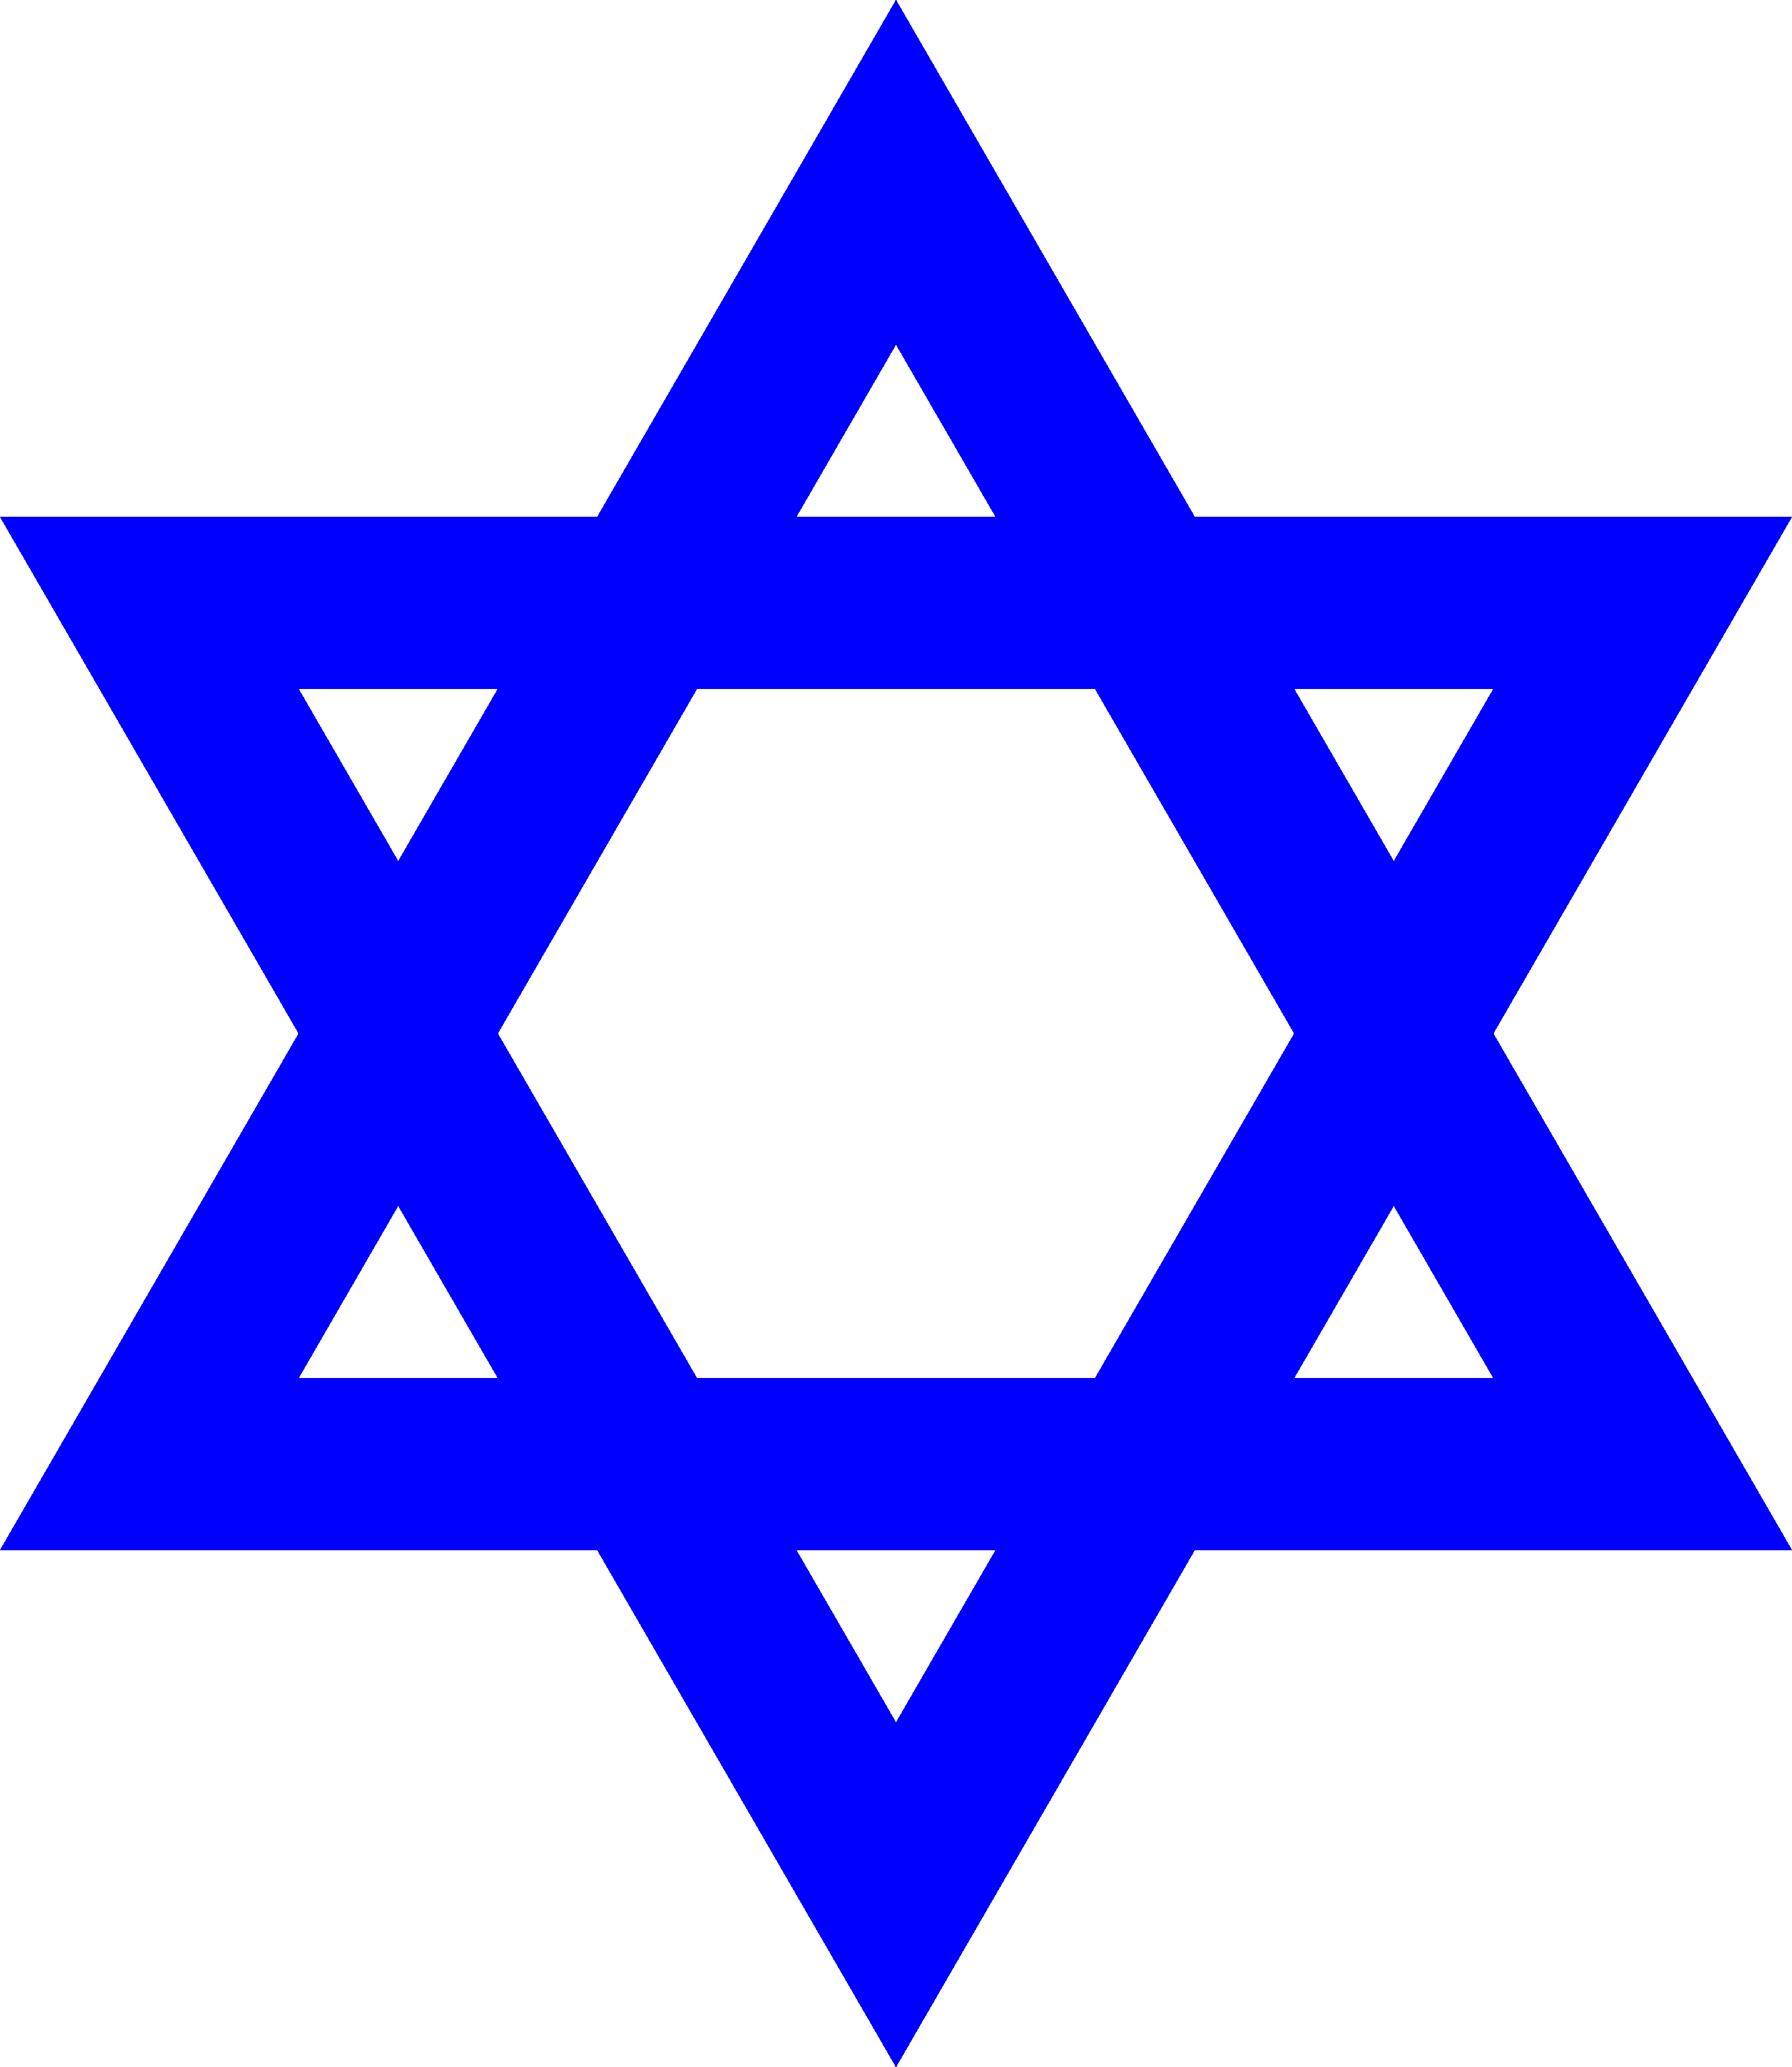 http://img2.wikia.nocookie.net/__cb20050914232618/judaism/images/c/cc/Wikipedia_blue_star_of_david.png